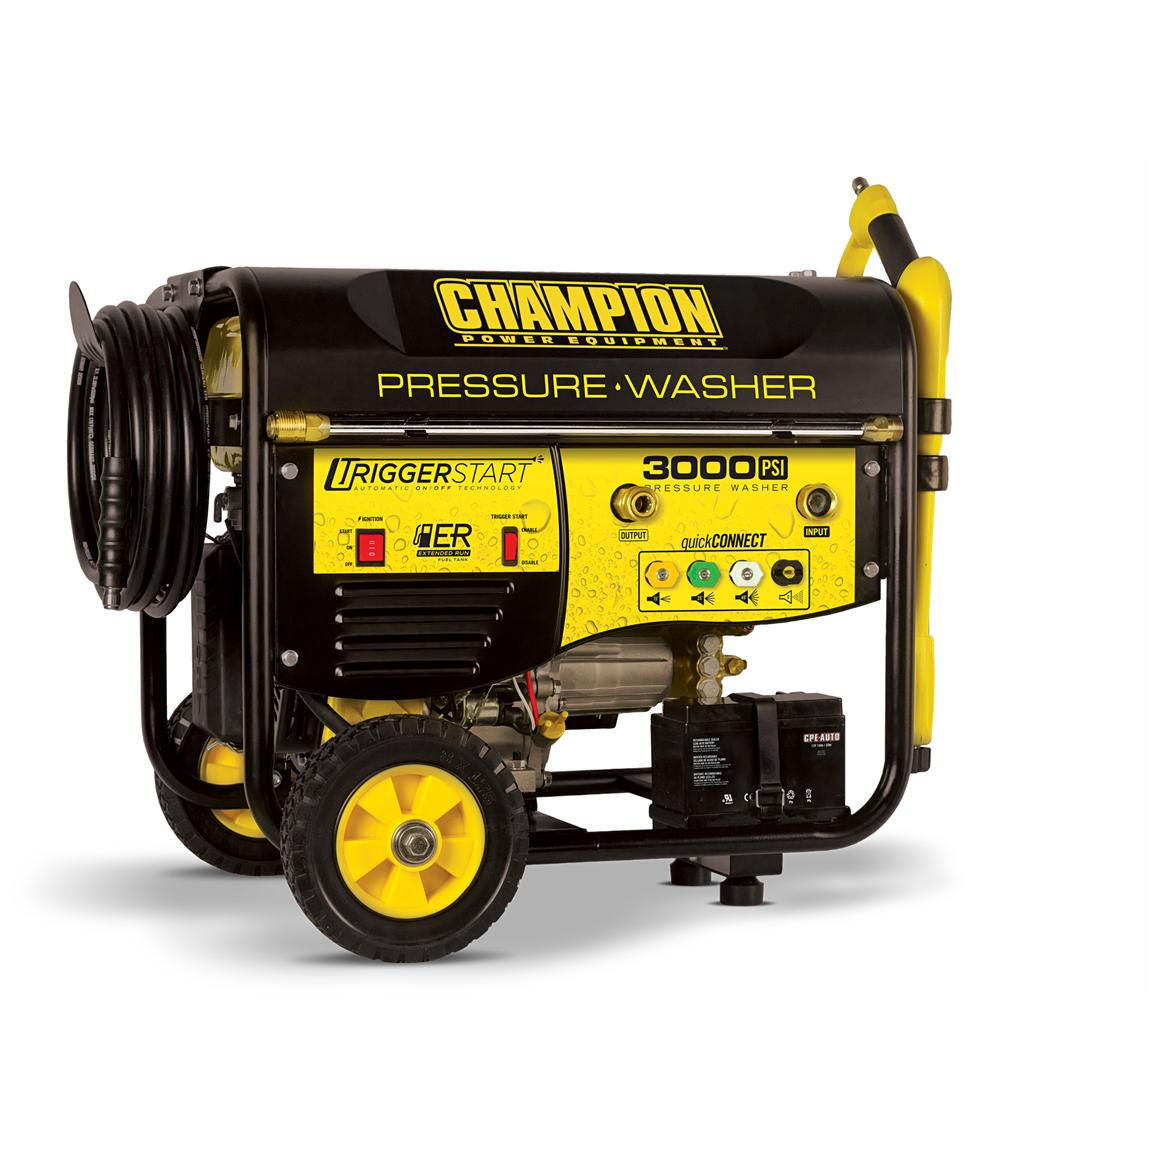 Champion Power Equipment 3,000 PSI CARB-compliant Trigger Start Pressure Washer with Wheel Kit